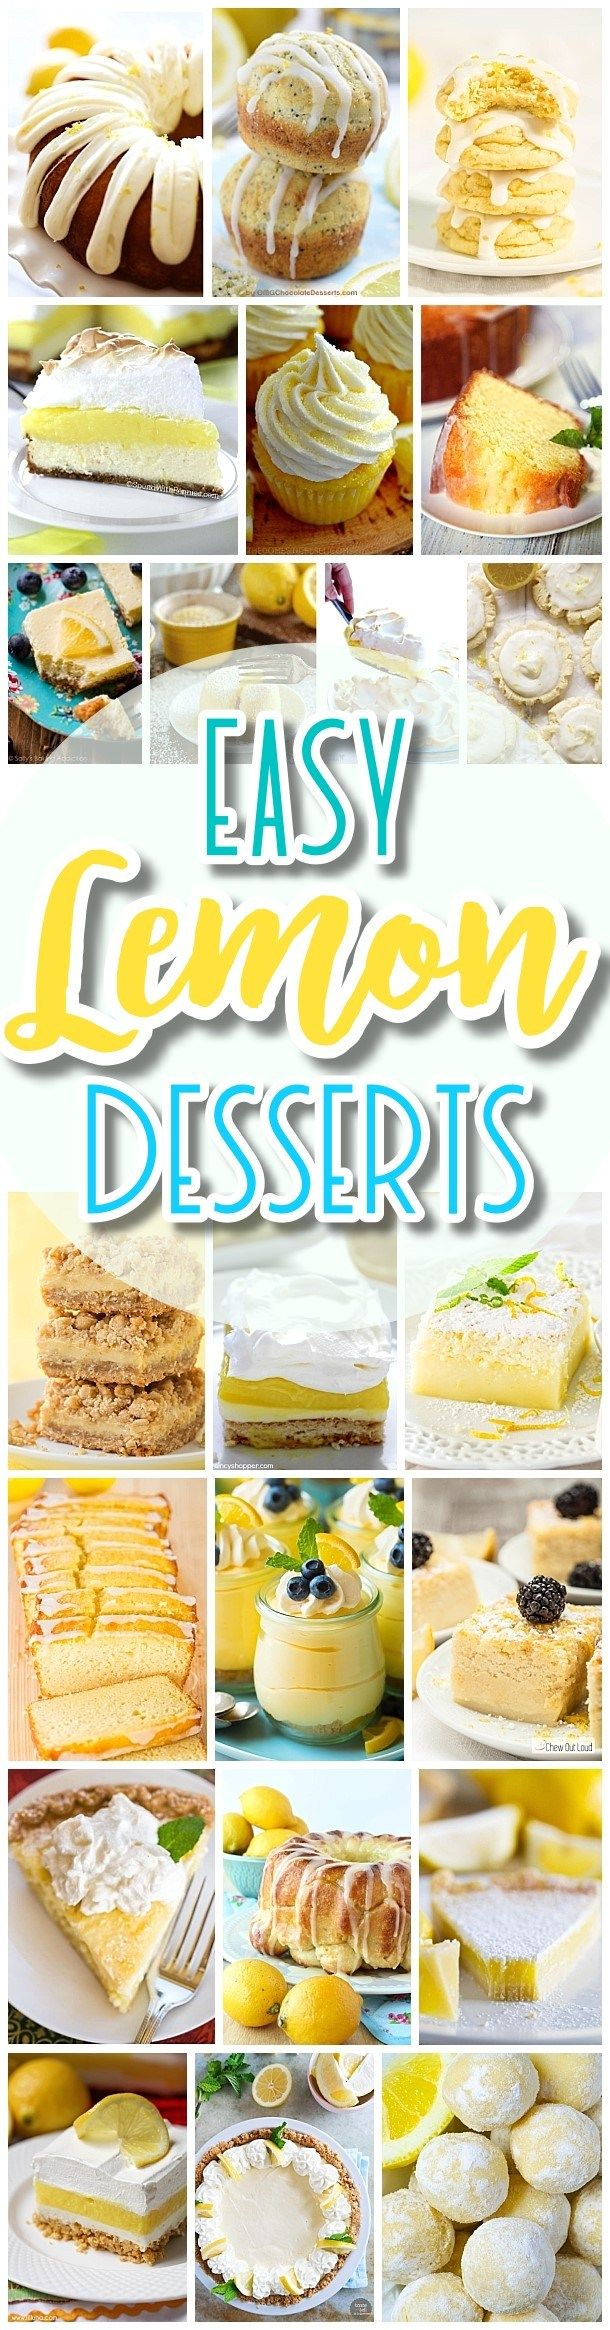 The BEST Easy Lemon Desserts and Treats Recipes - SPRING and SUMMER in dessert form! Perfect For Easter, Mother's Day Brunch, Bridal or Baby Showers and Pretty Spring and Summer Holiday Party Refreshments - Dreaming in DIY